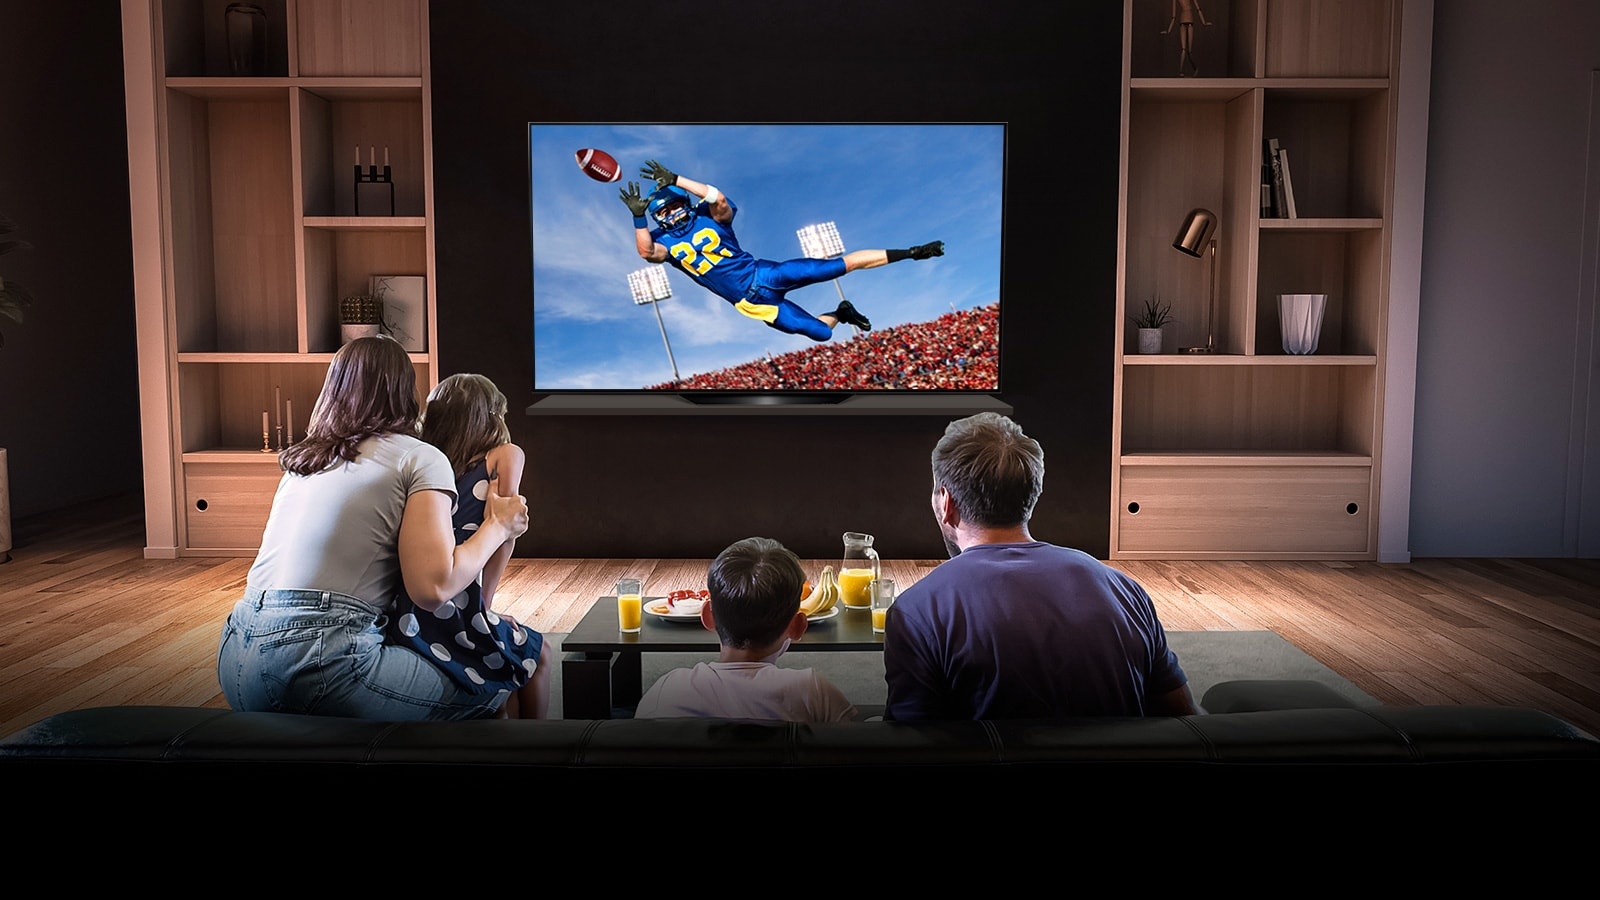 https://www.lg.com/hu/images/TV/OLED65CX3LA/TV-OLED-BX-18-Sports-Desktop.jpg